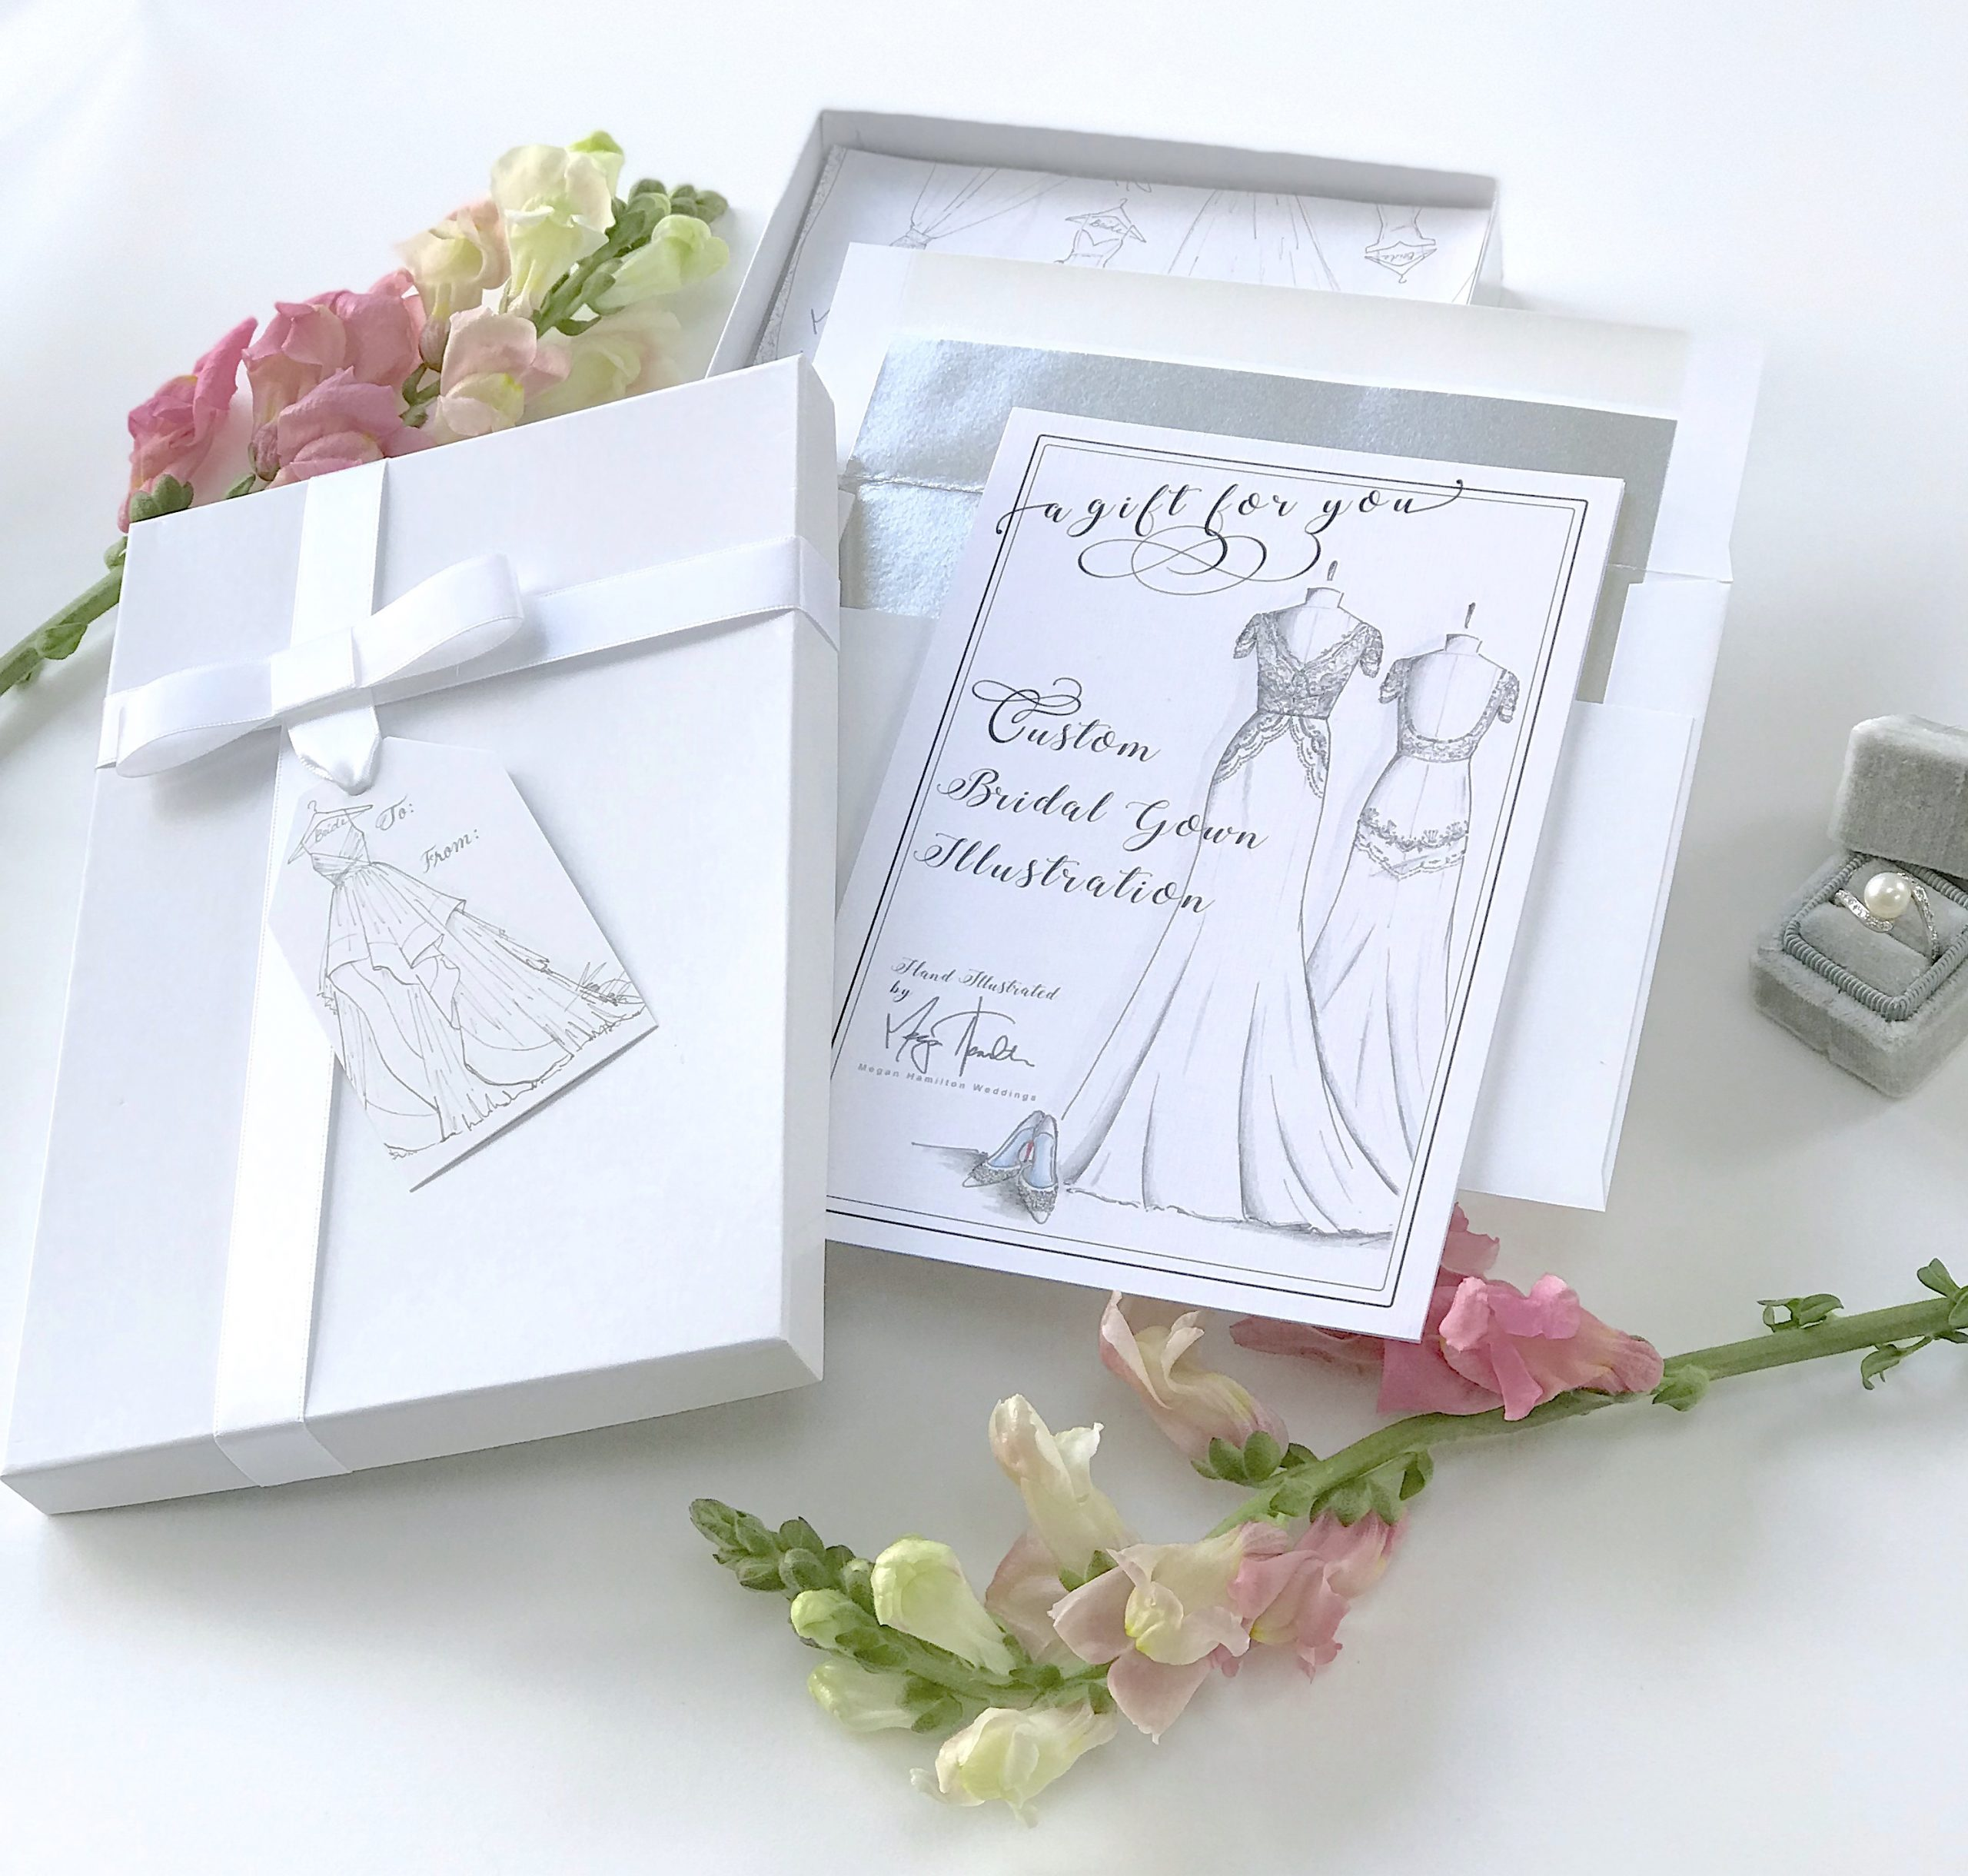 Custom bridal gown illustration as a wedding gift. Drawn by Megan Hamilton Weddings. Featured on Dream Weddings.